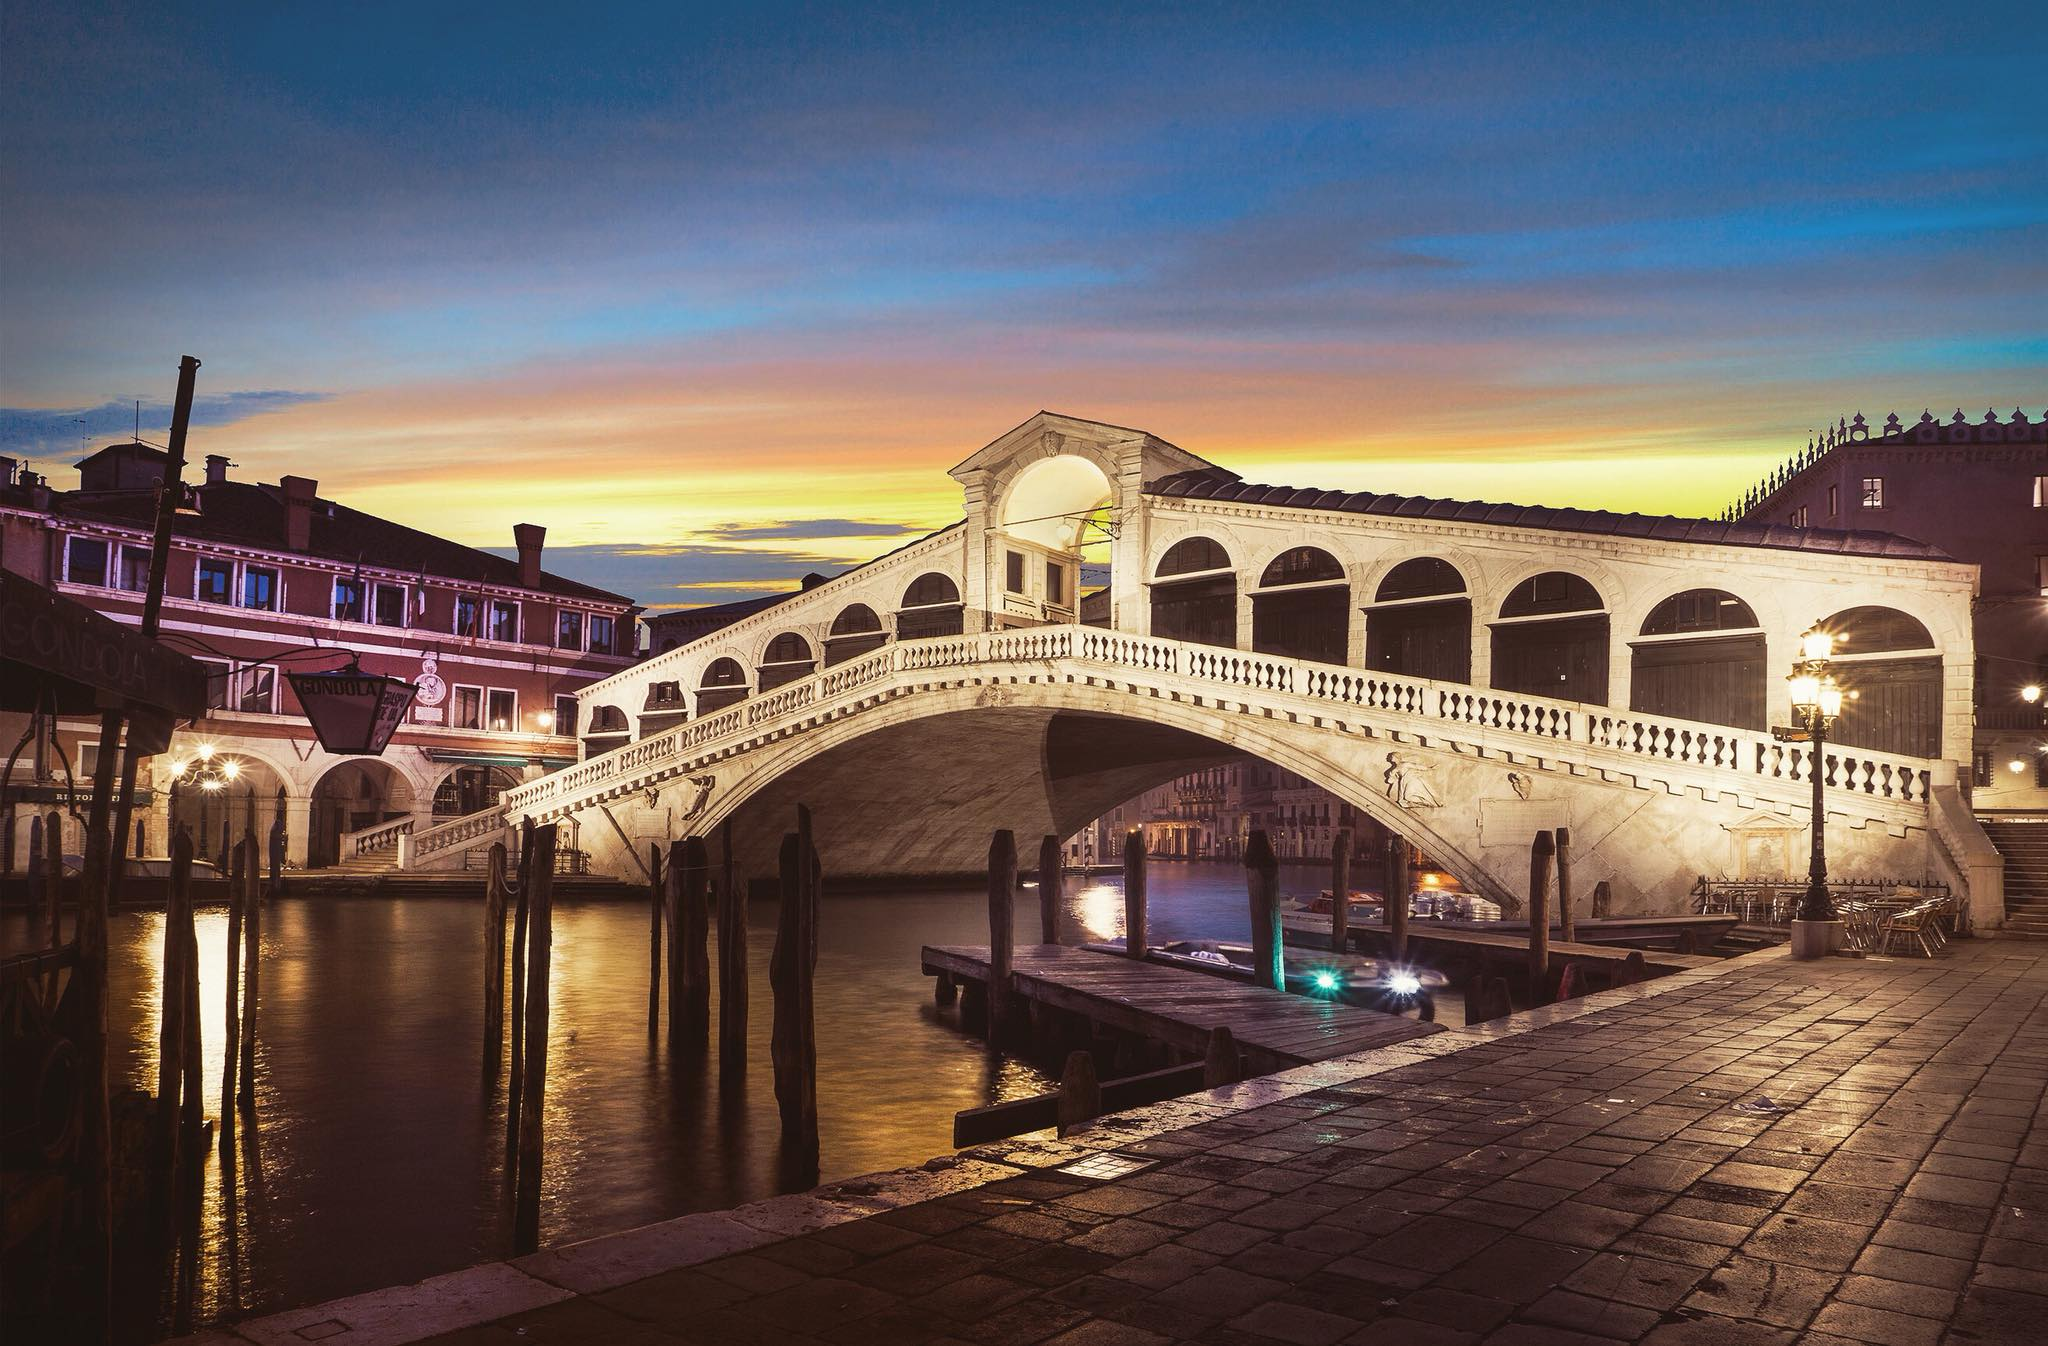 Dawn on the Rialto Bridge